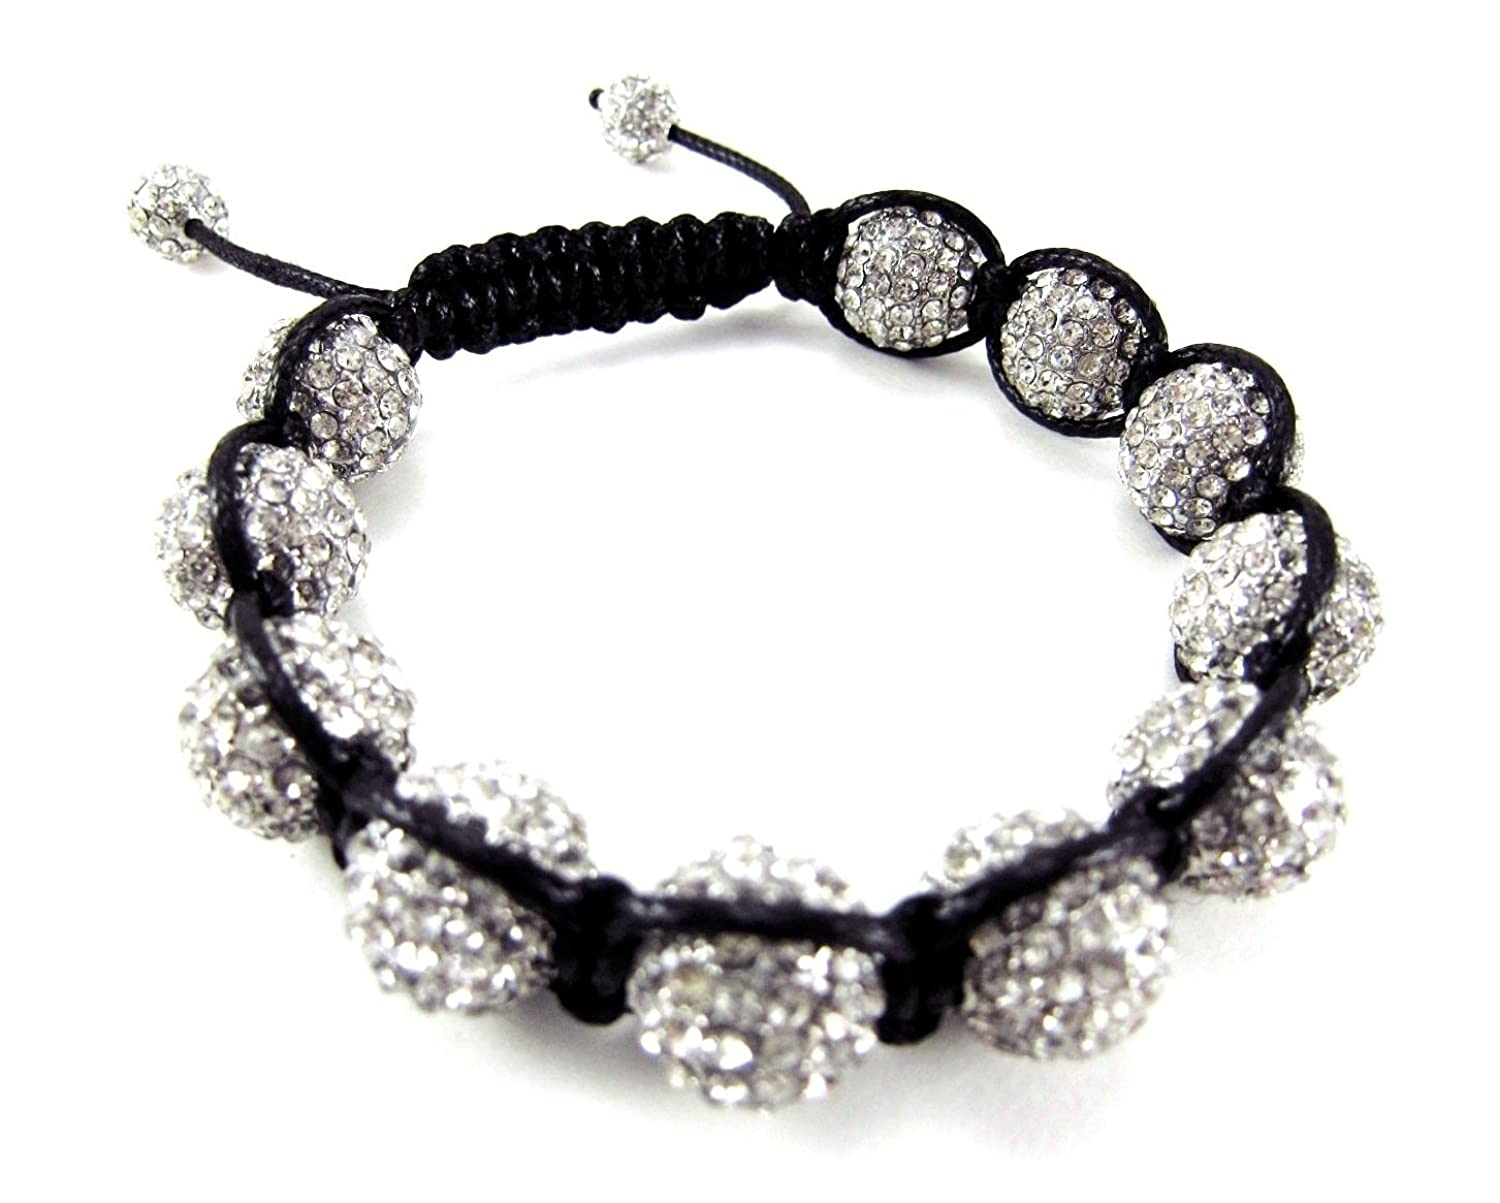 12mm Fully Iced Out Clear White Adjustable Bracelet + Gift Box